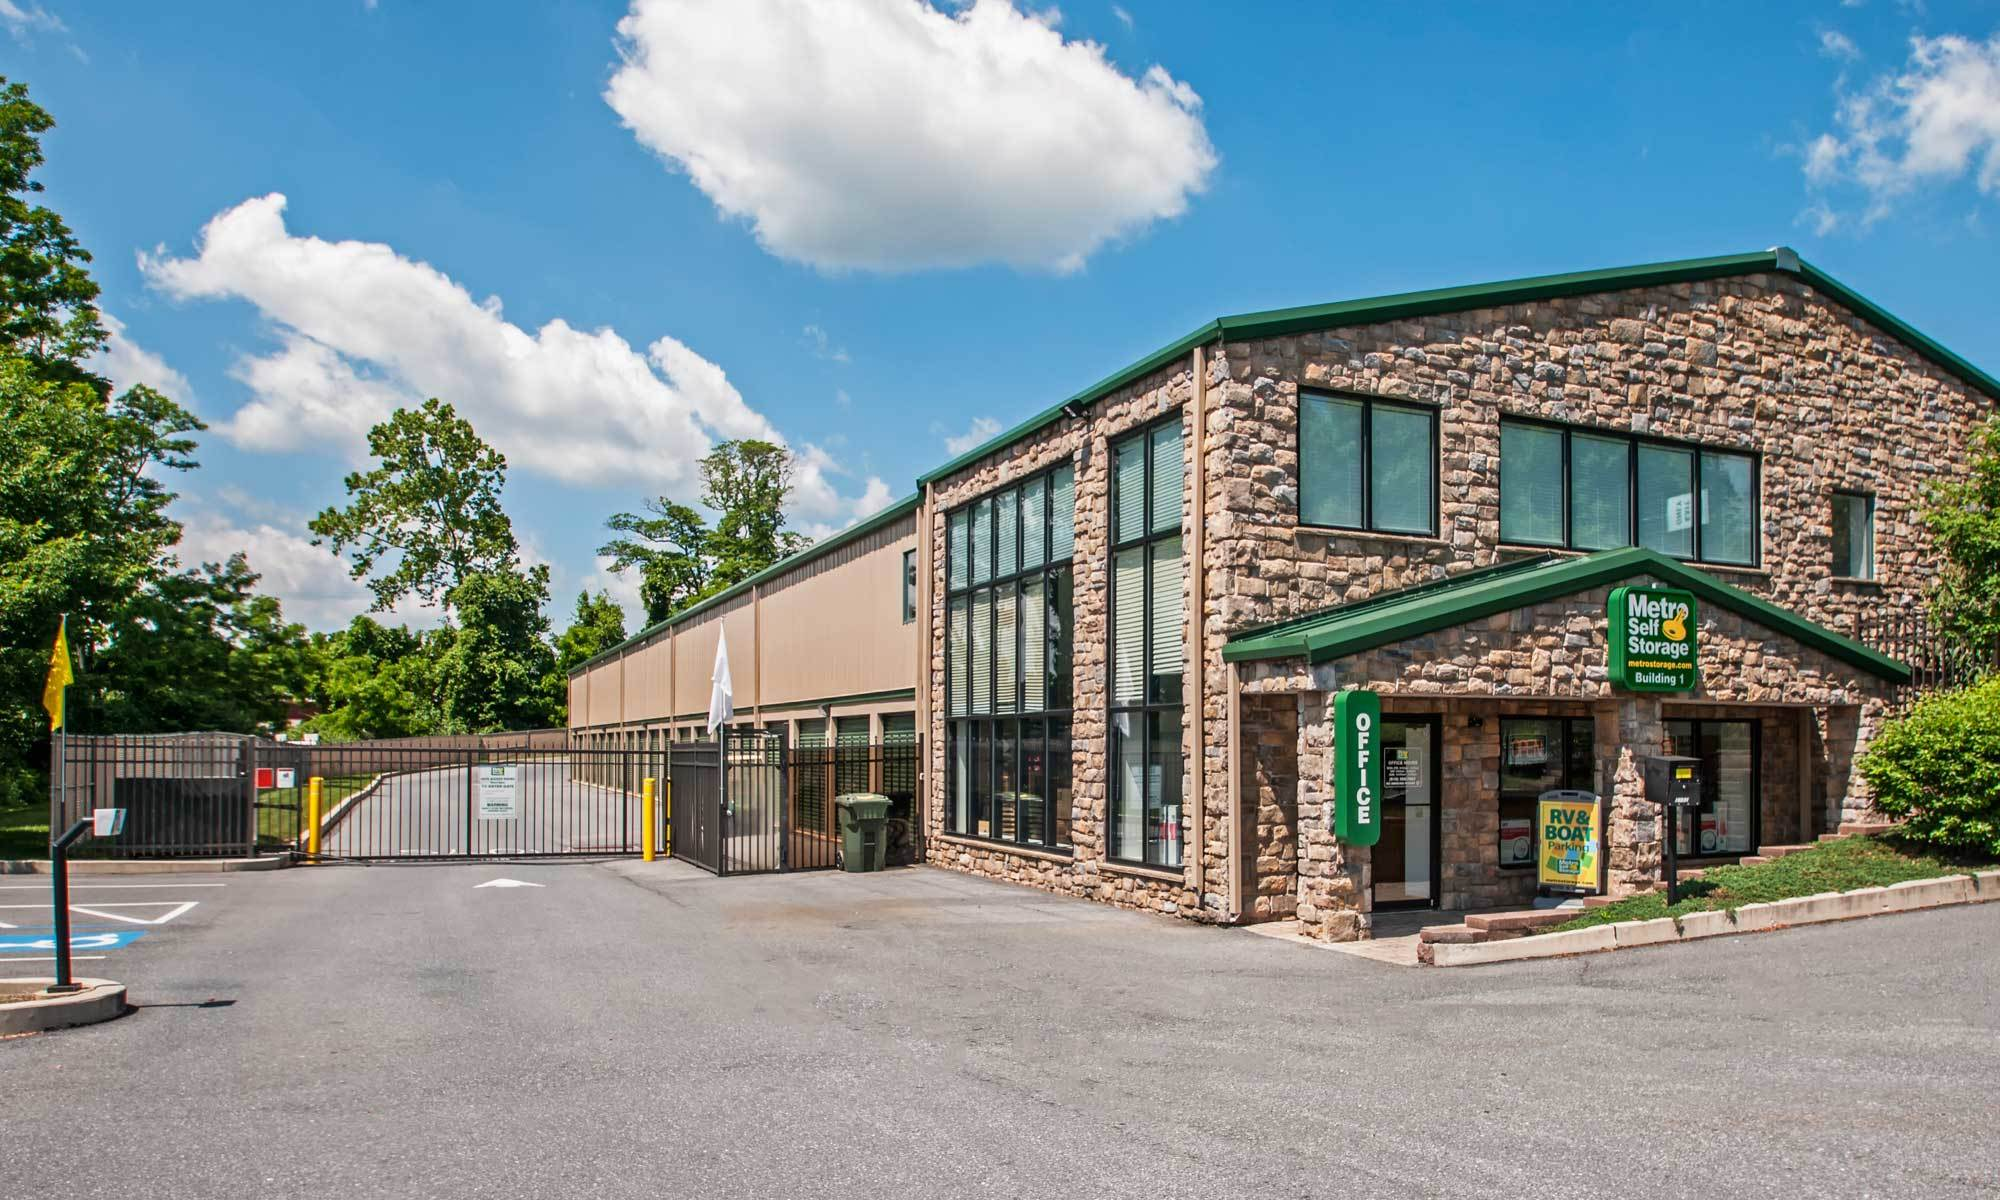 Metro Self Storage in Newtown Square, PA